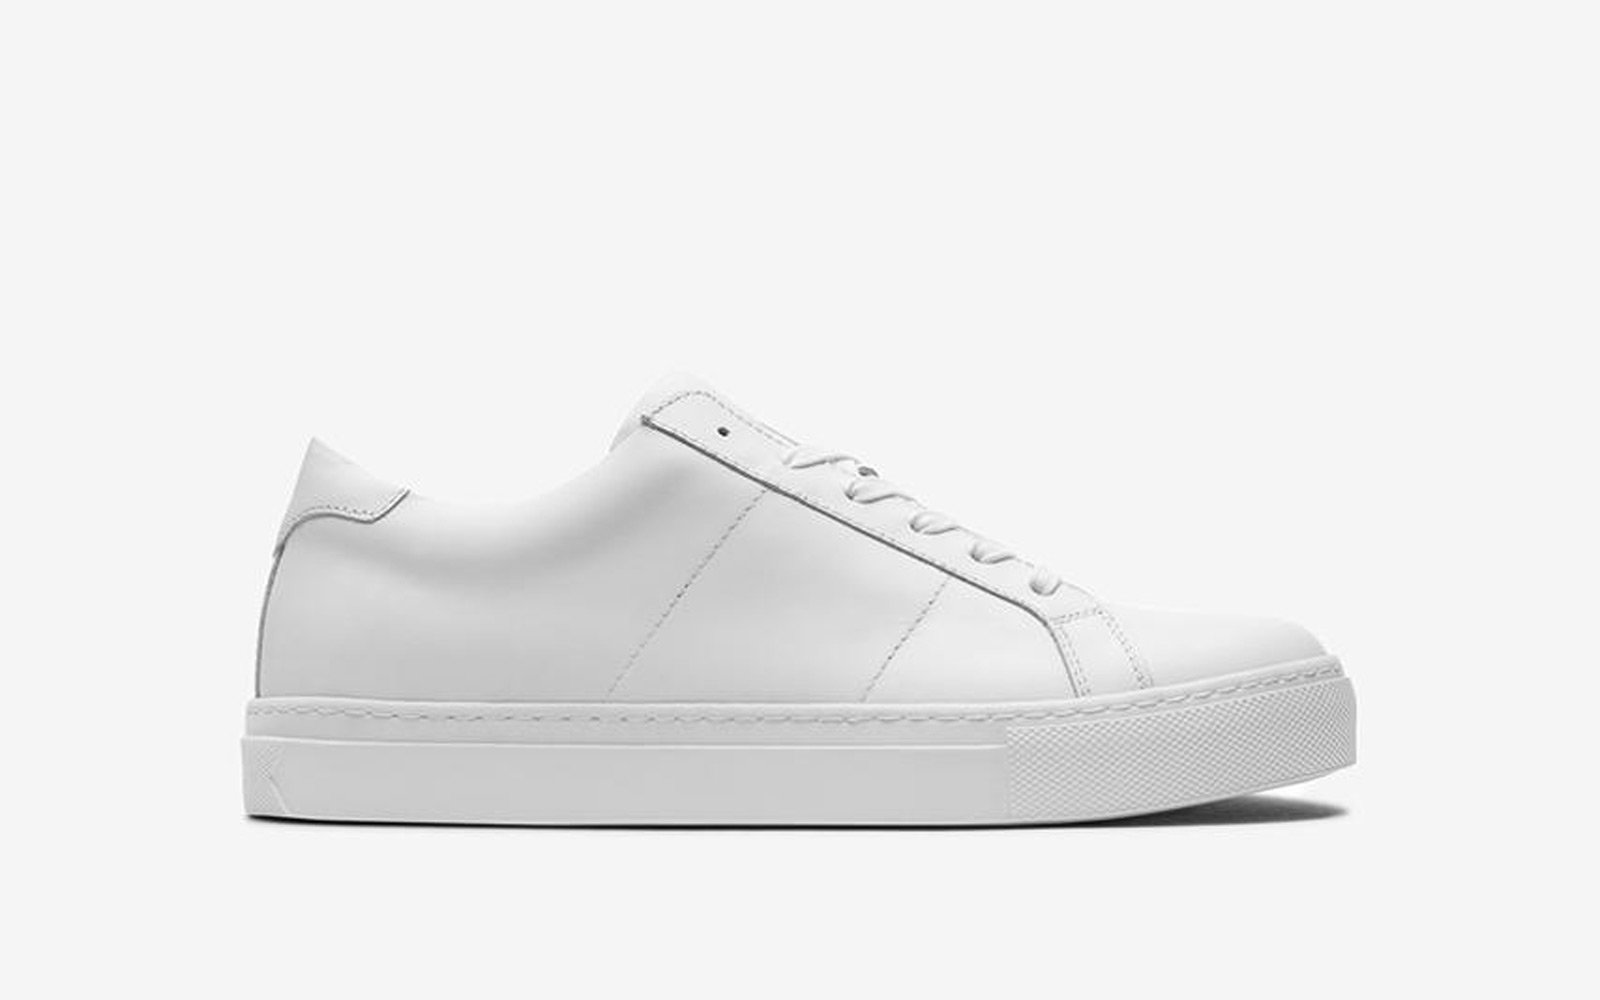 13 Best White Platform Sneakers Outfit Ideas for Women